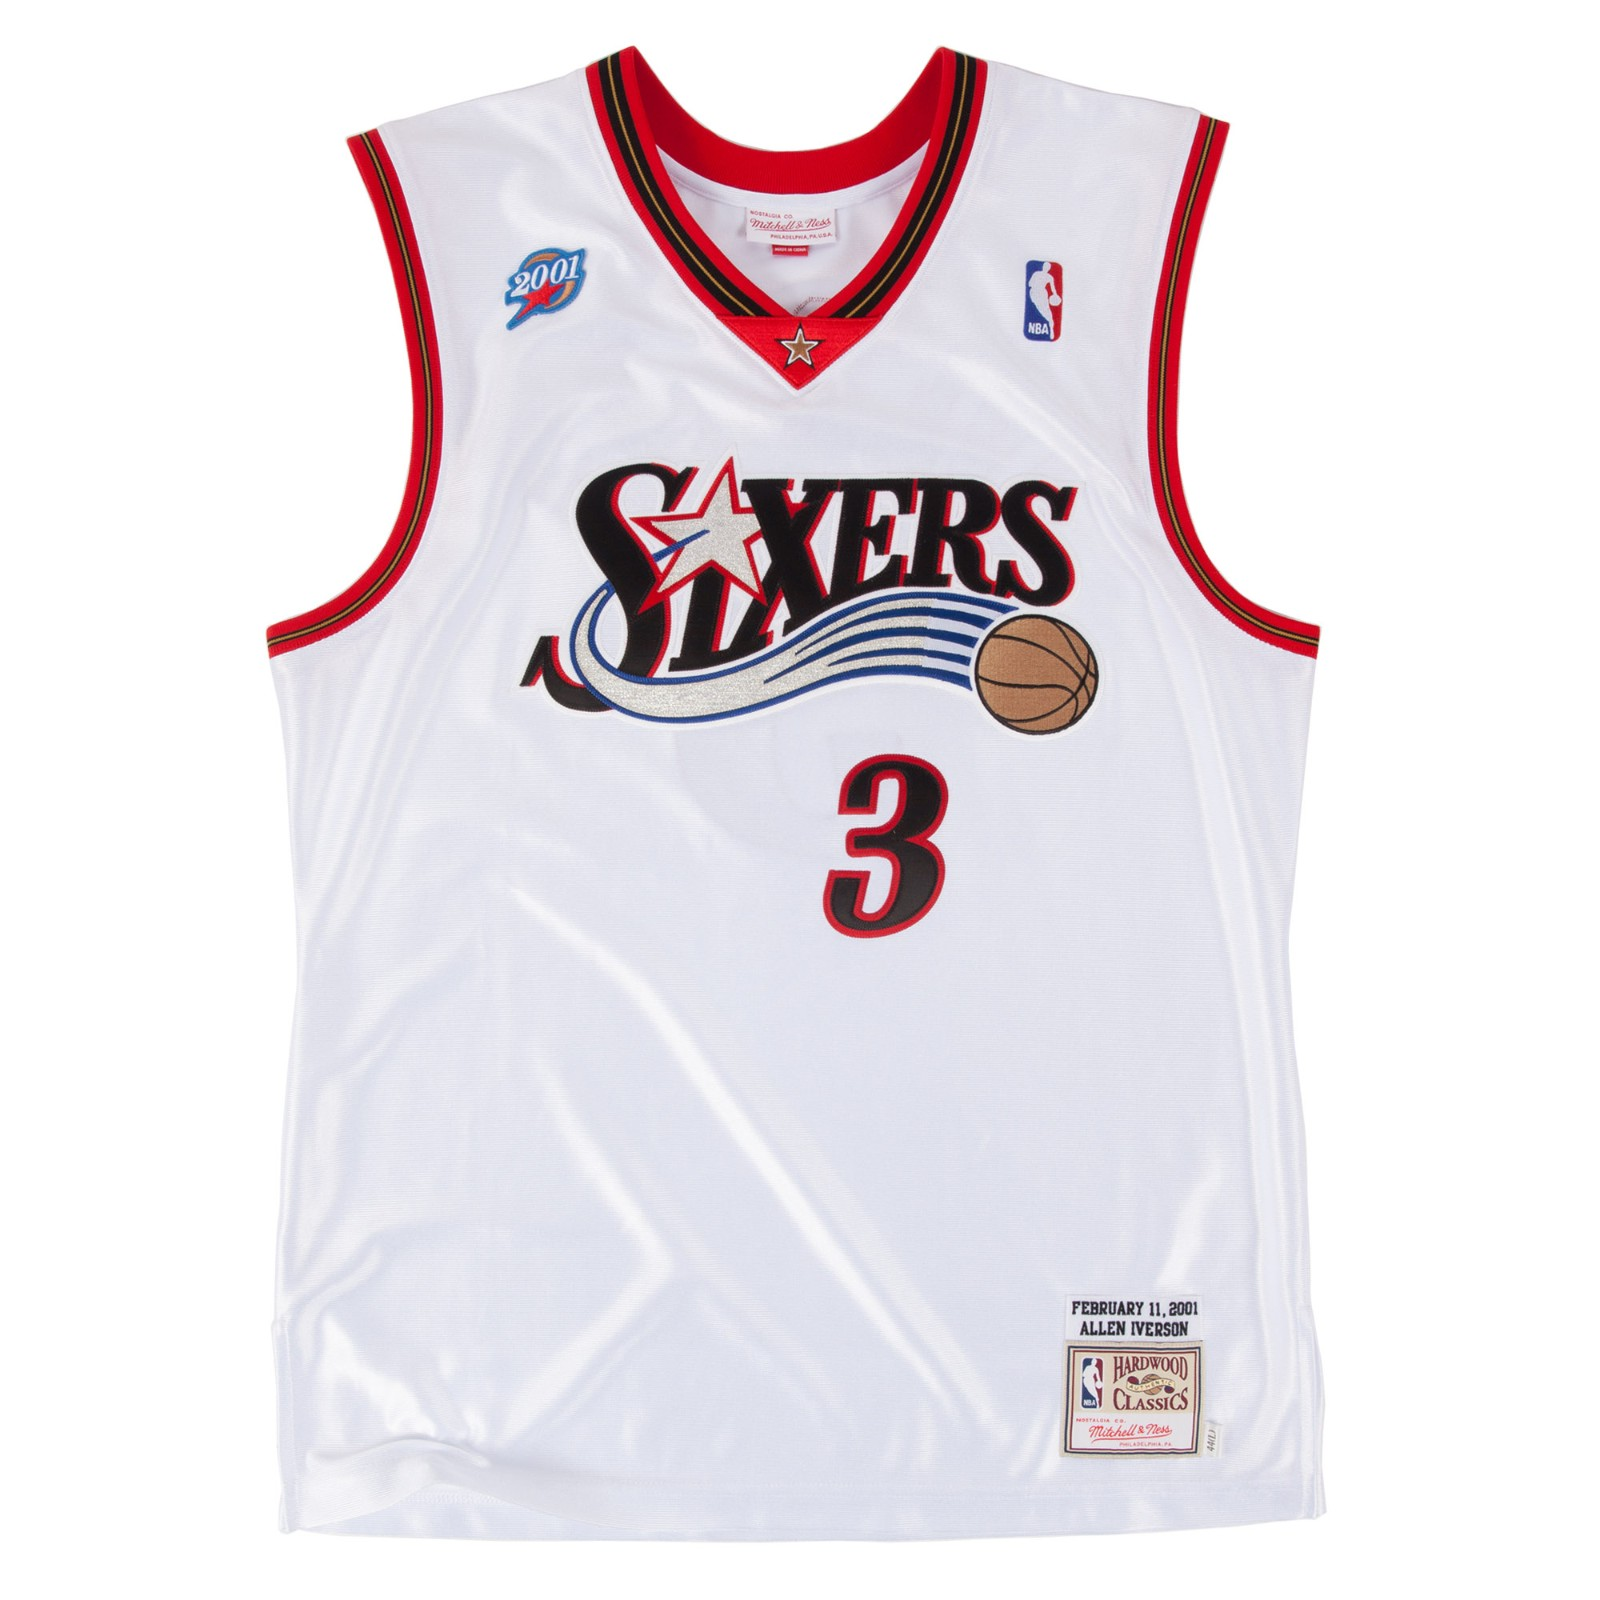 386b09449 Allen Iverson 2001 Philadelphia 76ers Mitchell   Ness Authentic All Star  Jersey